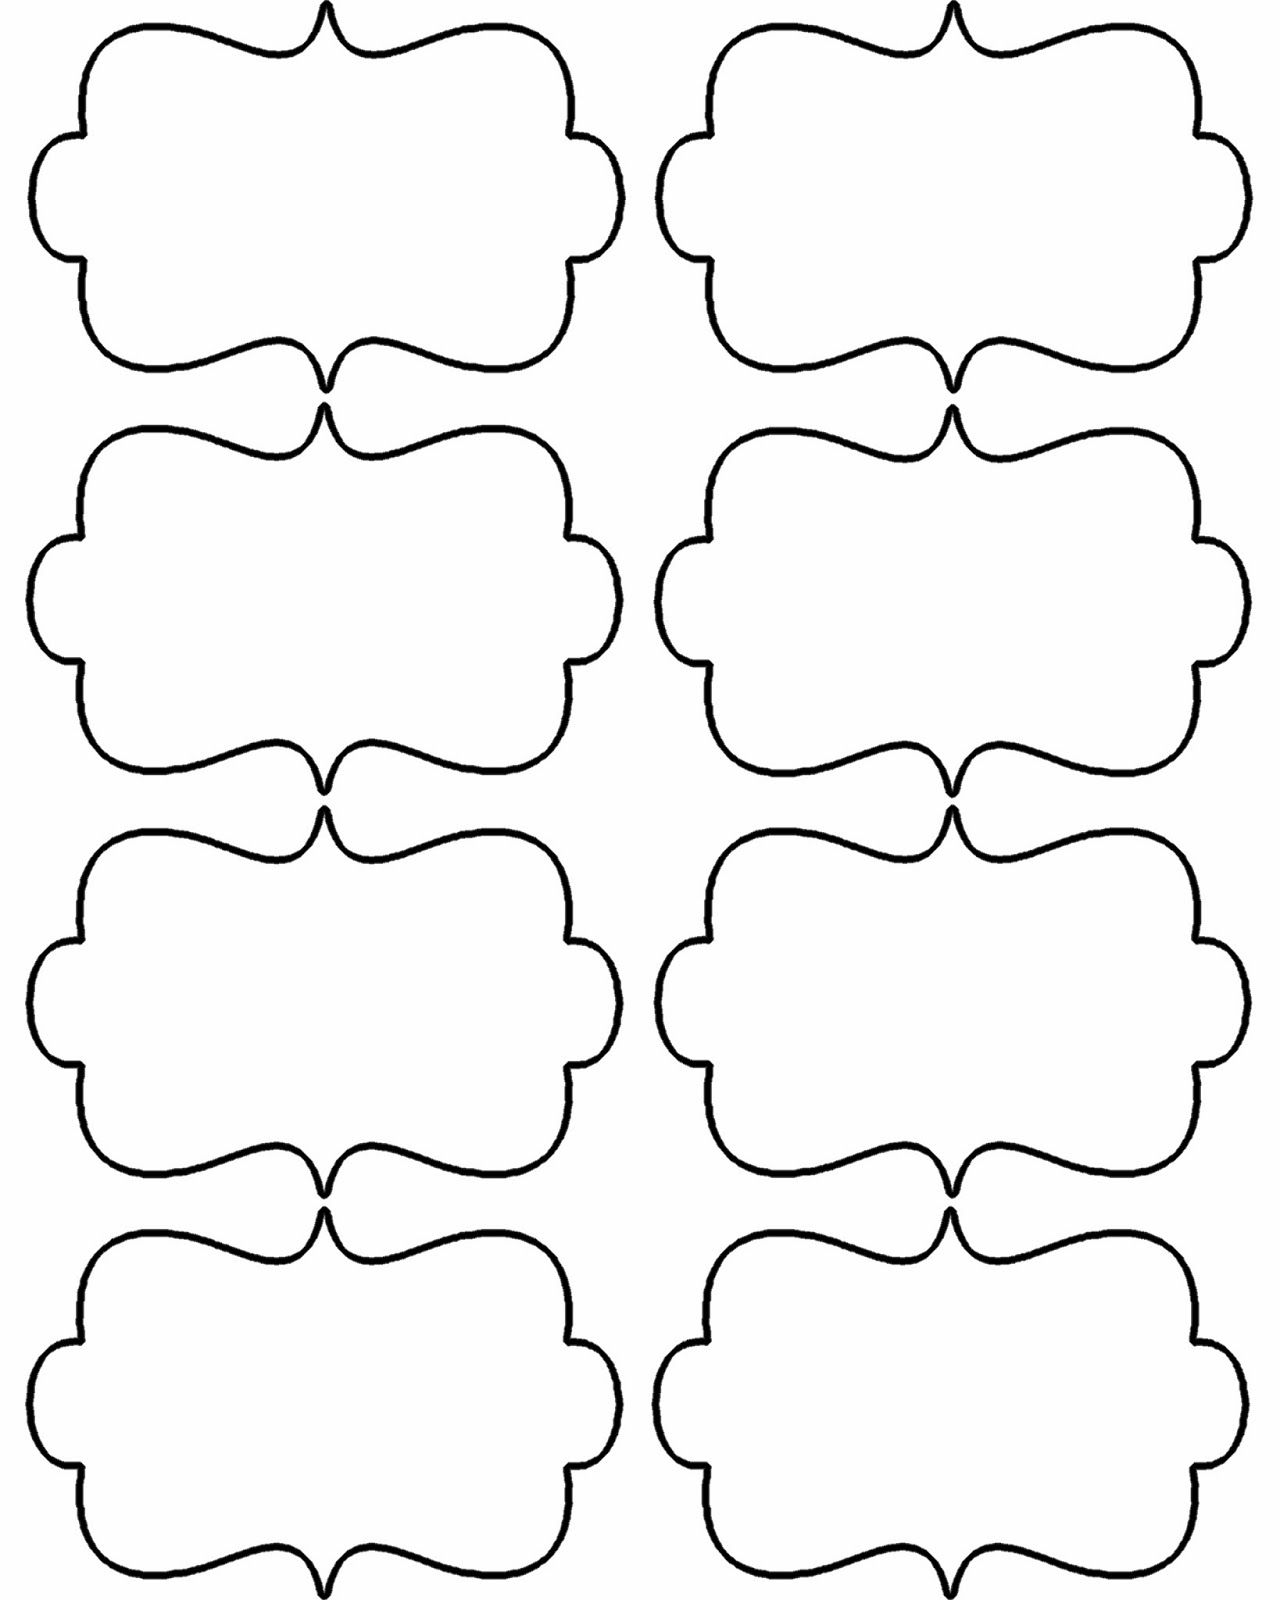 Blank Christmas Shapes Templates